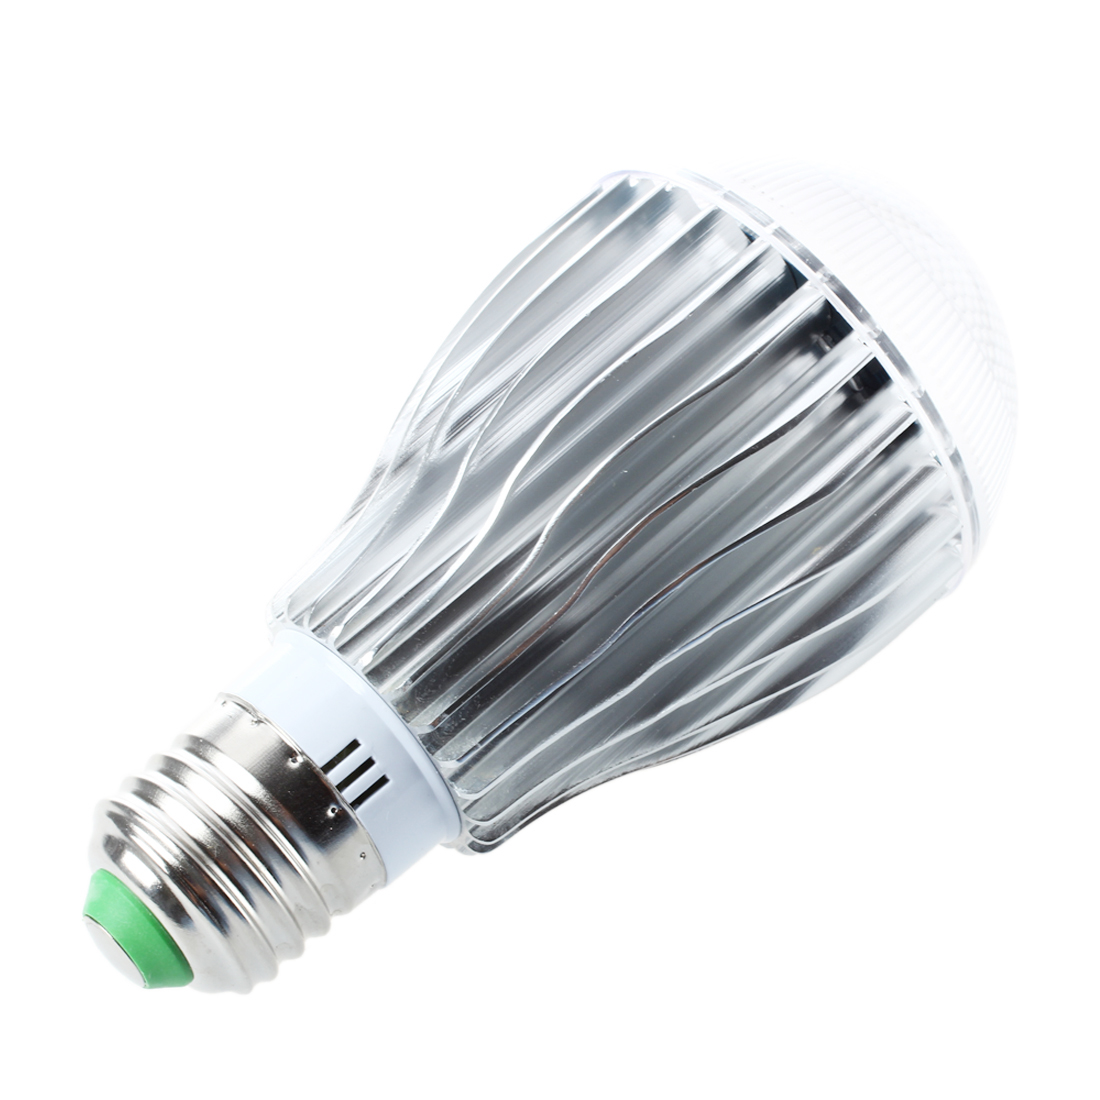 e27 9w rgb colored led light bulb color change lamp light 230v with remote cont ebay. Black Bedroom Furniture Sets. Home Design Ideas